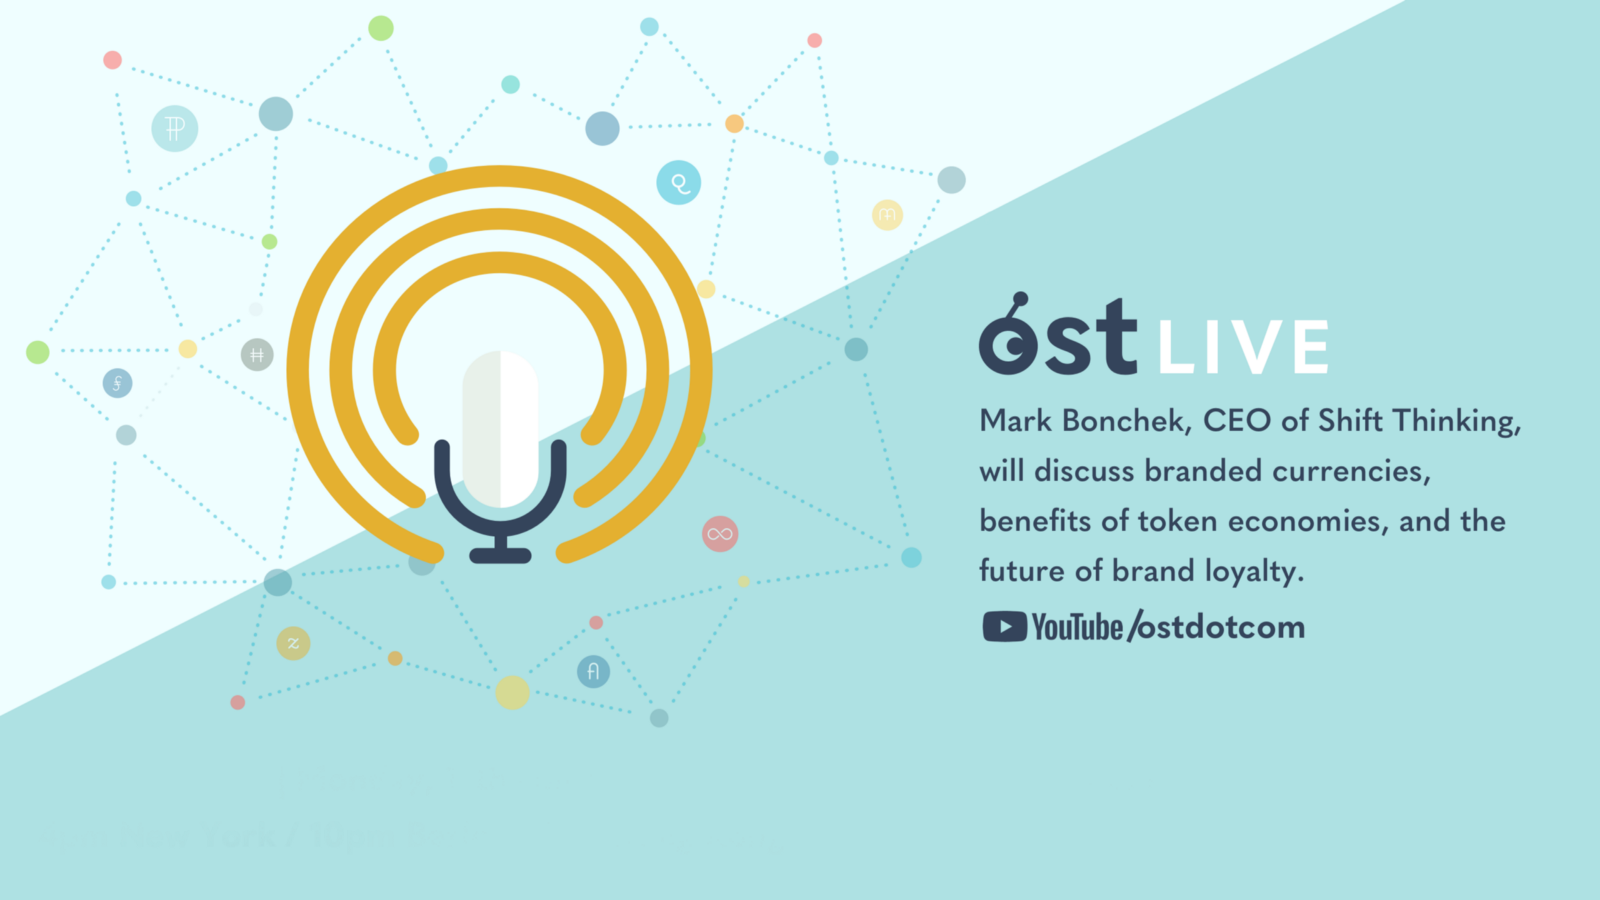 50th OST LIVE with Mark Bonchek, Founder & CEO of Shift Thinking — Branded Currencies and Tokenized Loyalty